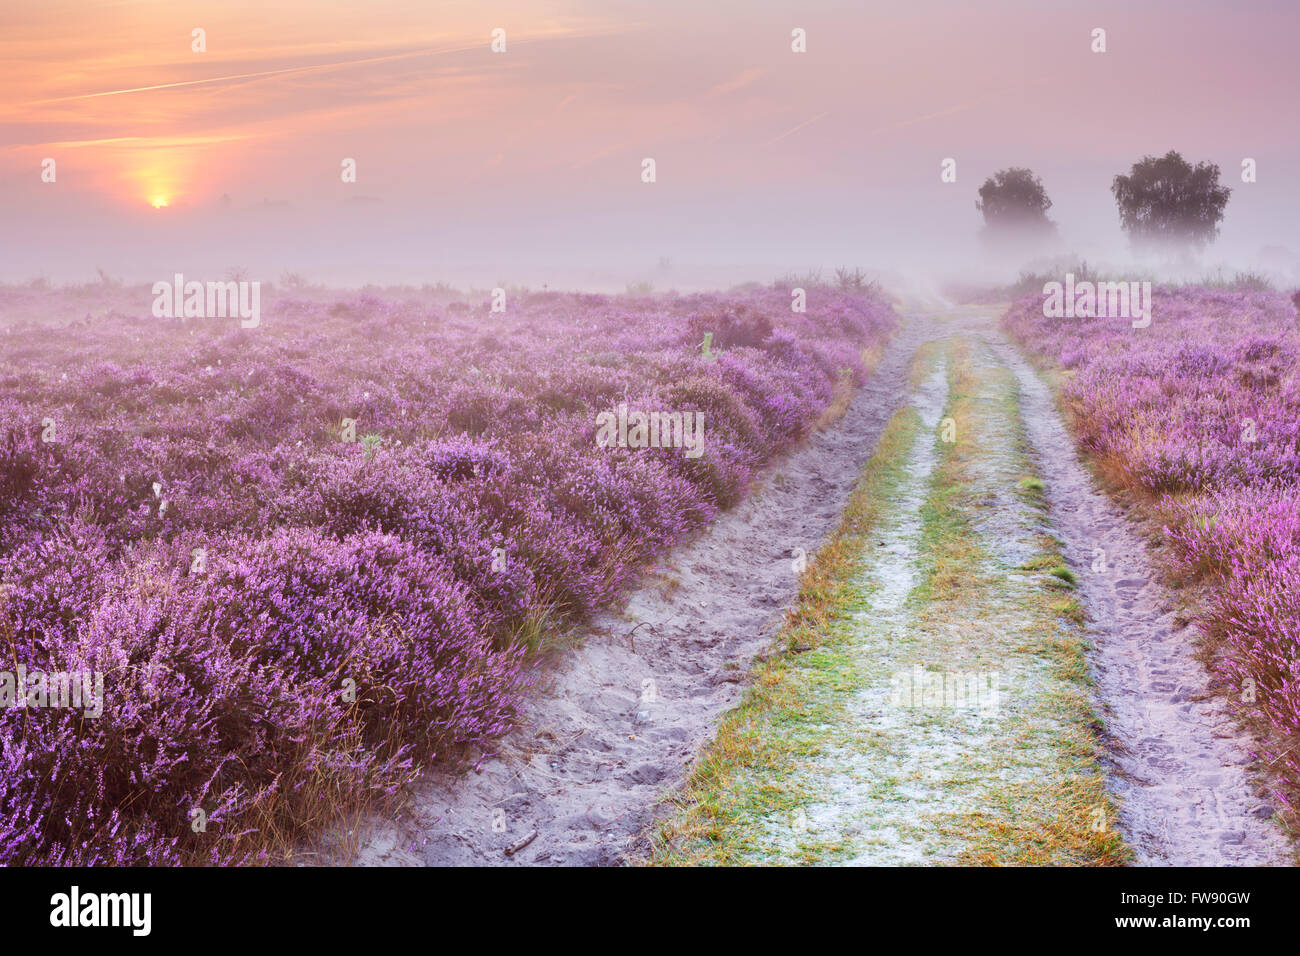 Path through blooming heather on a foggy morning at sunrise. Photographed near Hilversum in The Netherlands. - Stock Image